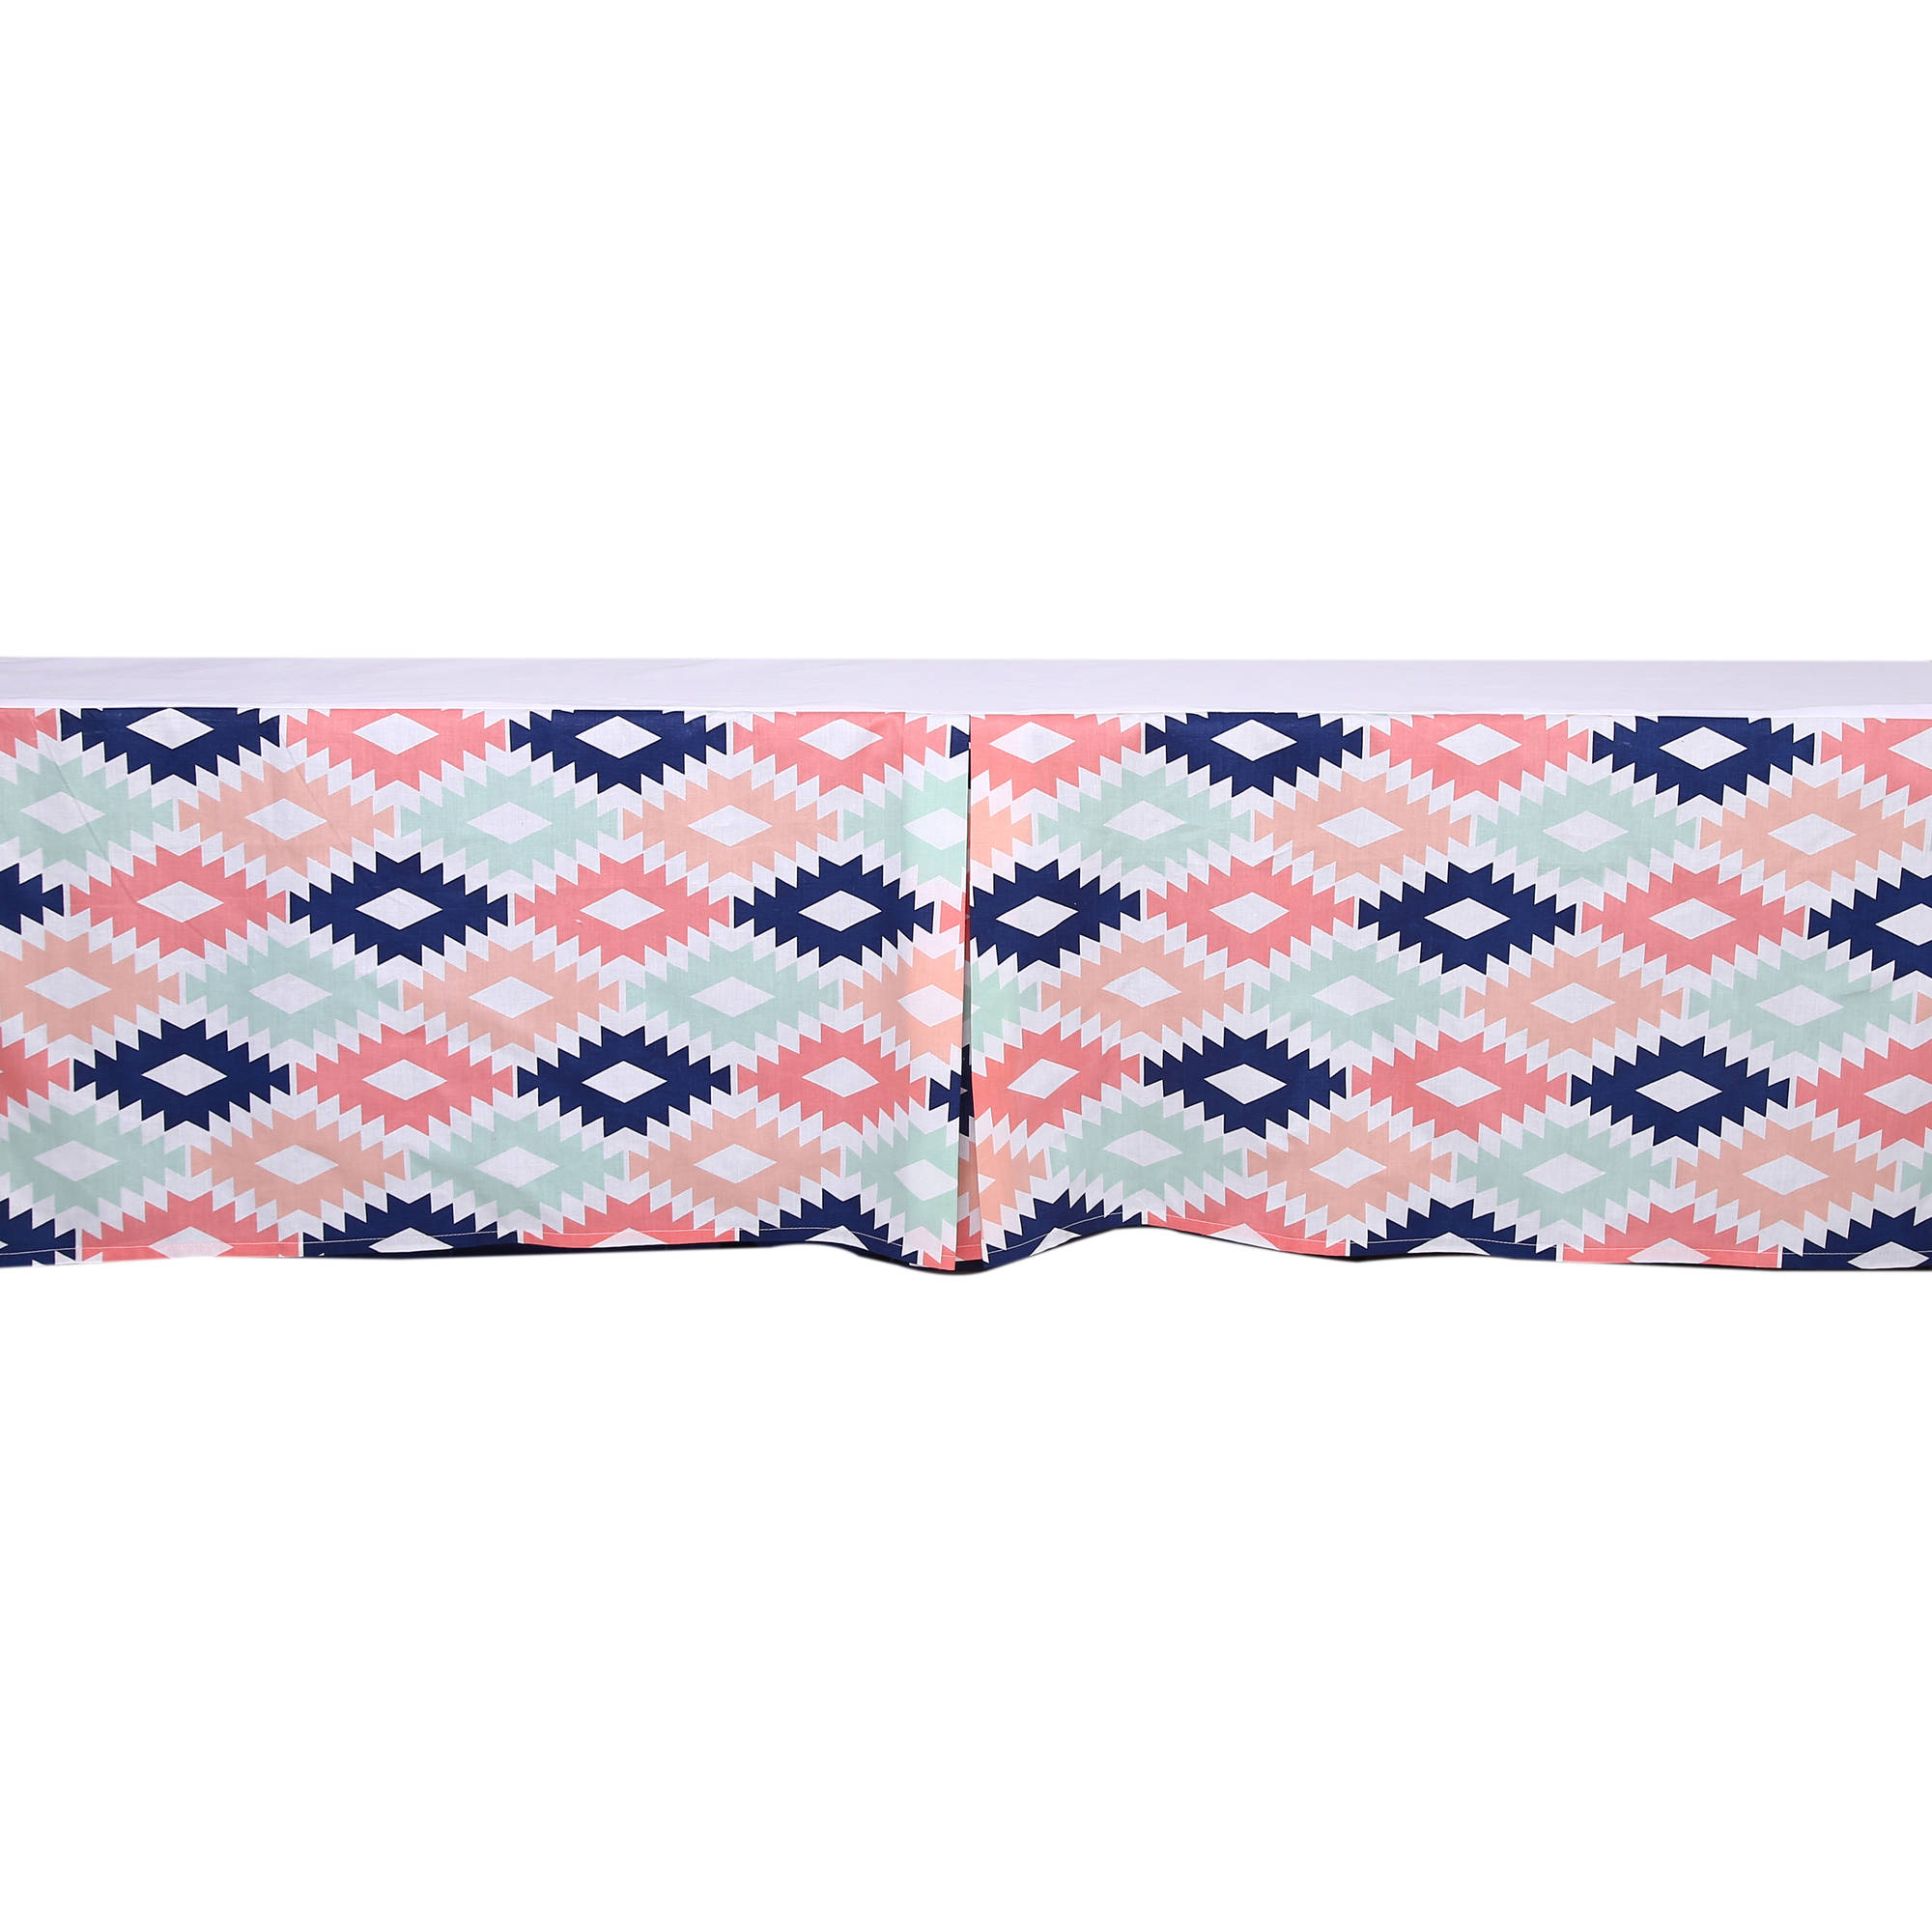 Bacati - Emma Aztec Kilim Aqua/Orange/Navy Tailored with 100% Cotton Percale 13 inch drop Crib/Toddler Bed Skirt